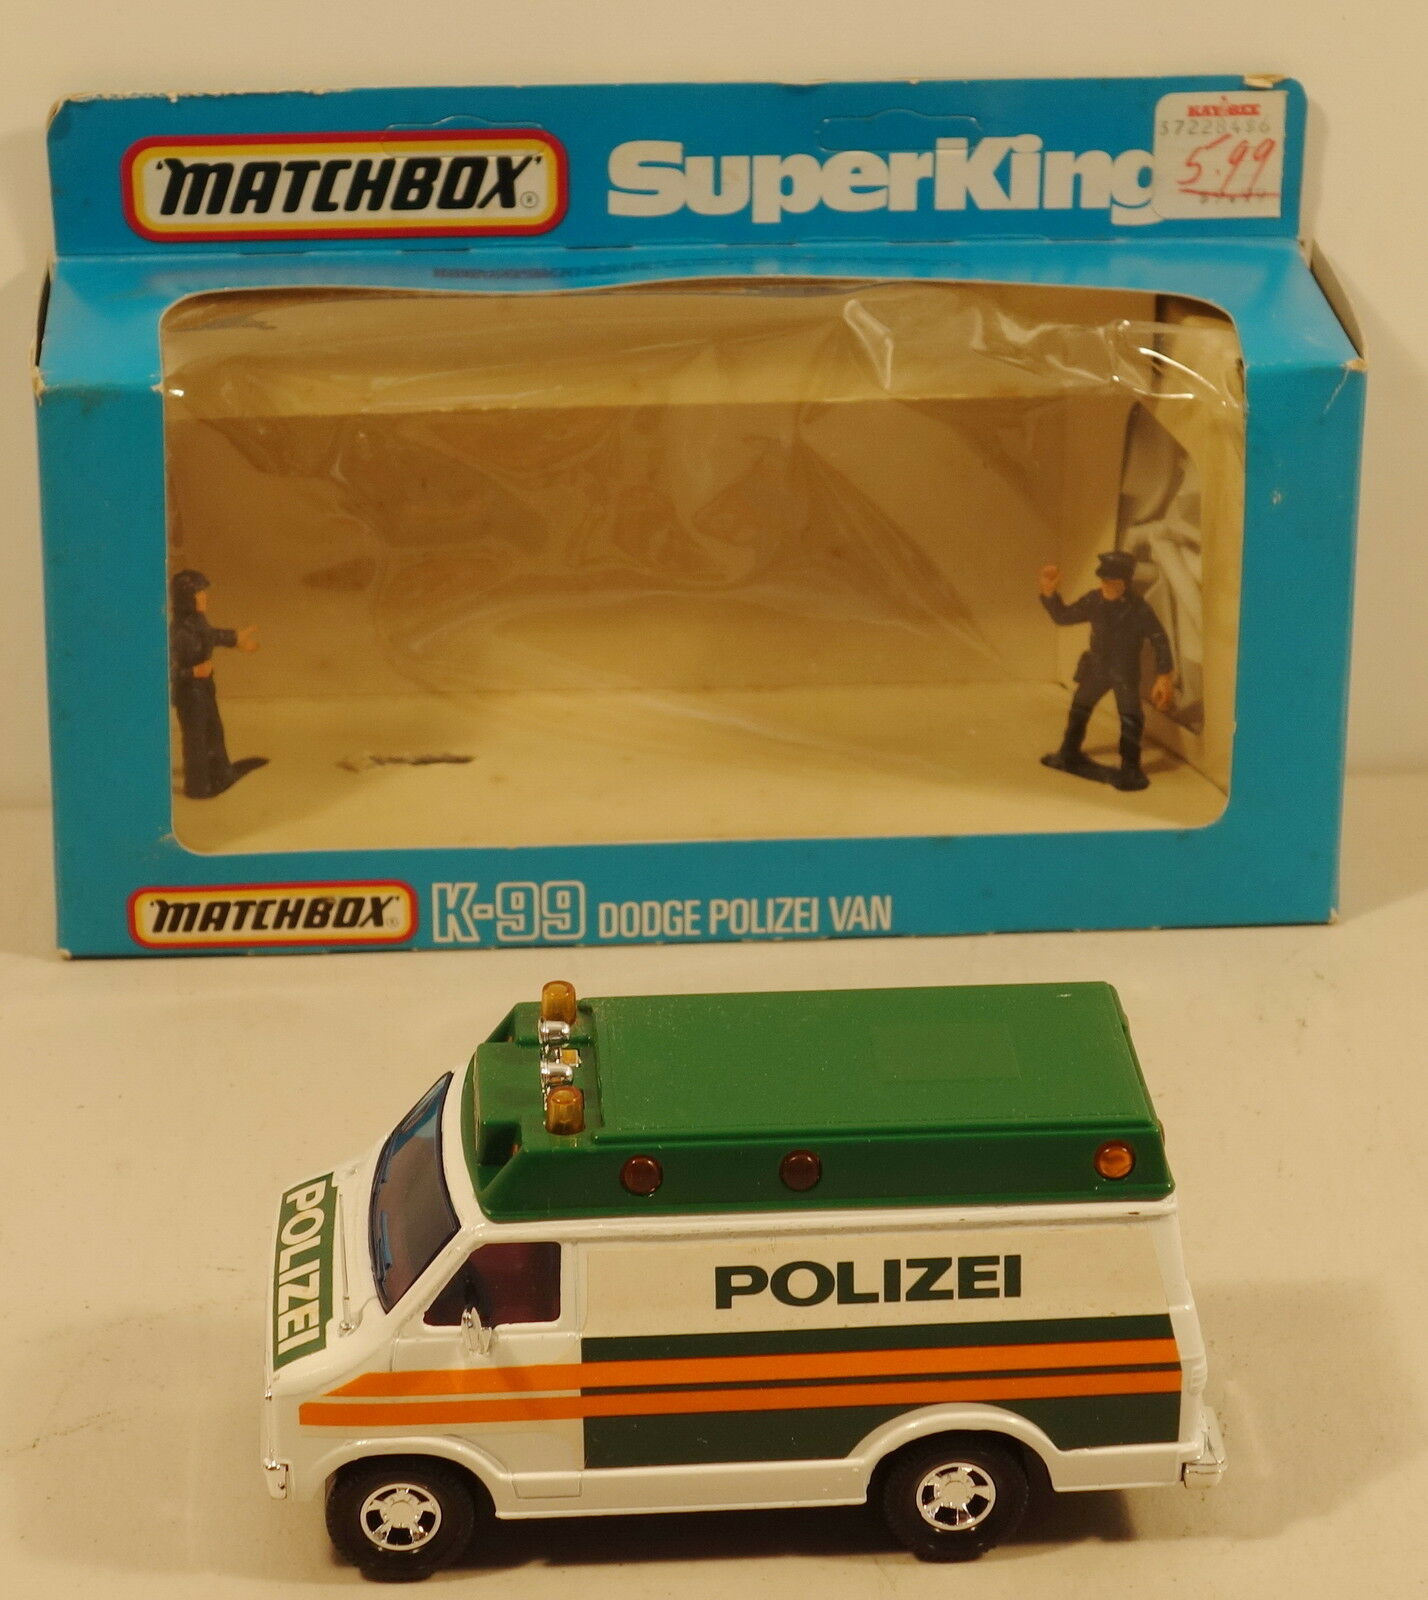 DTE GERMAN LESNEY MATCHBOX SUPERKINGS SUPERKINGS SUPERKINGS SK-99 POLIZEI DODGE POLICE VAN NIOB d735f6